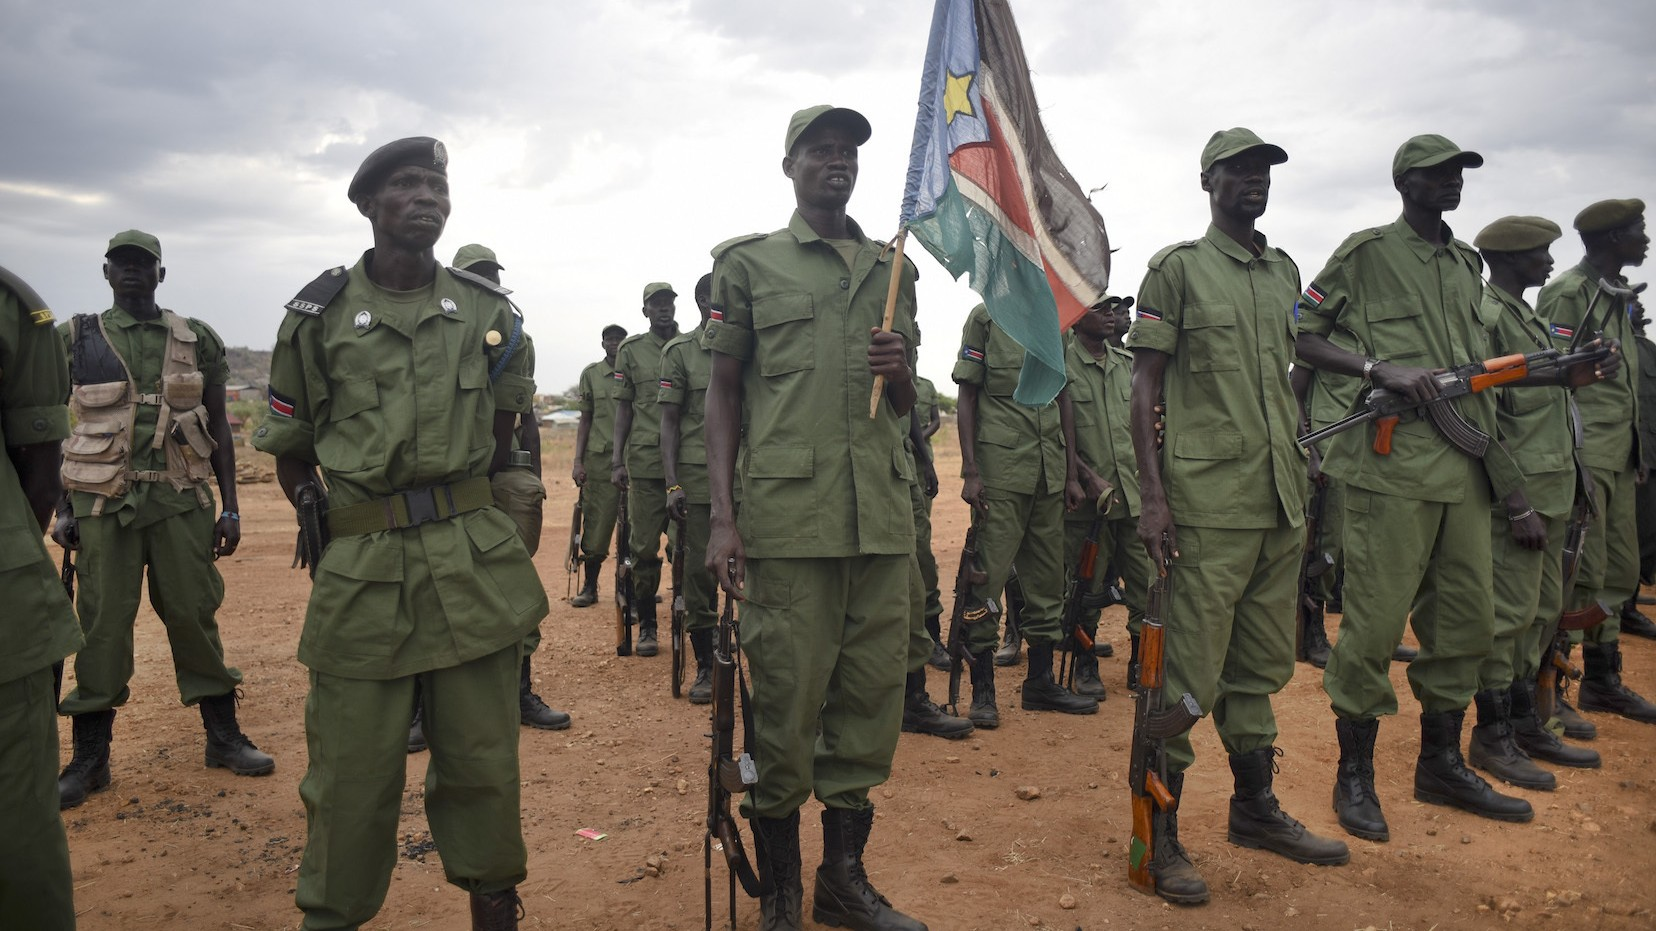 South Sudan Rebel Leader Riek Machar Sworn in as Vice President After Two Years of War